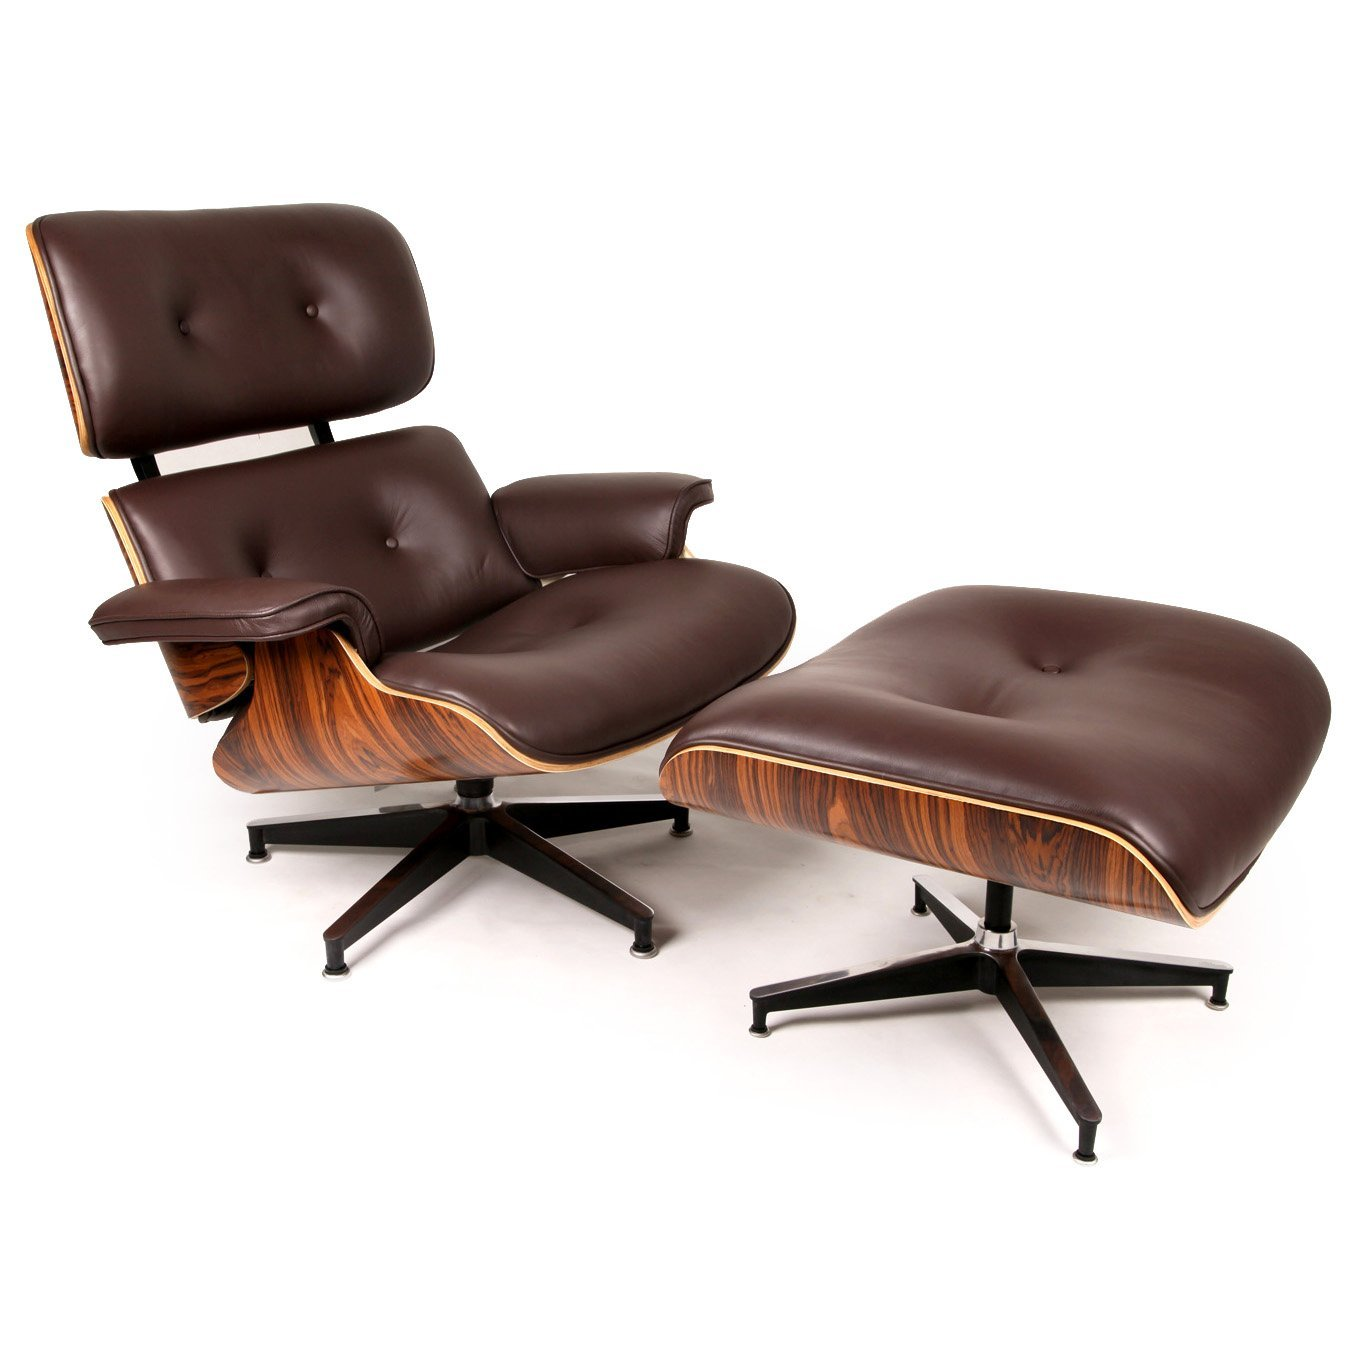 eames1 interior-fancy-authentic-eames-chair-with-brown-fabric-